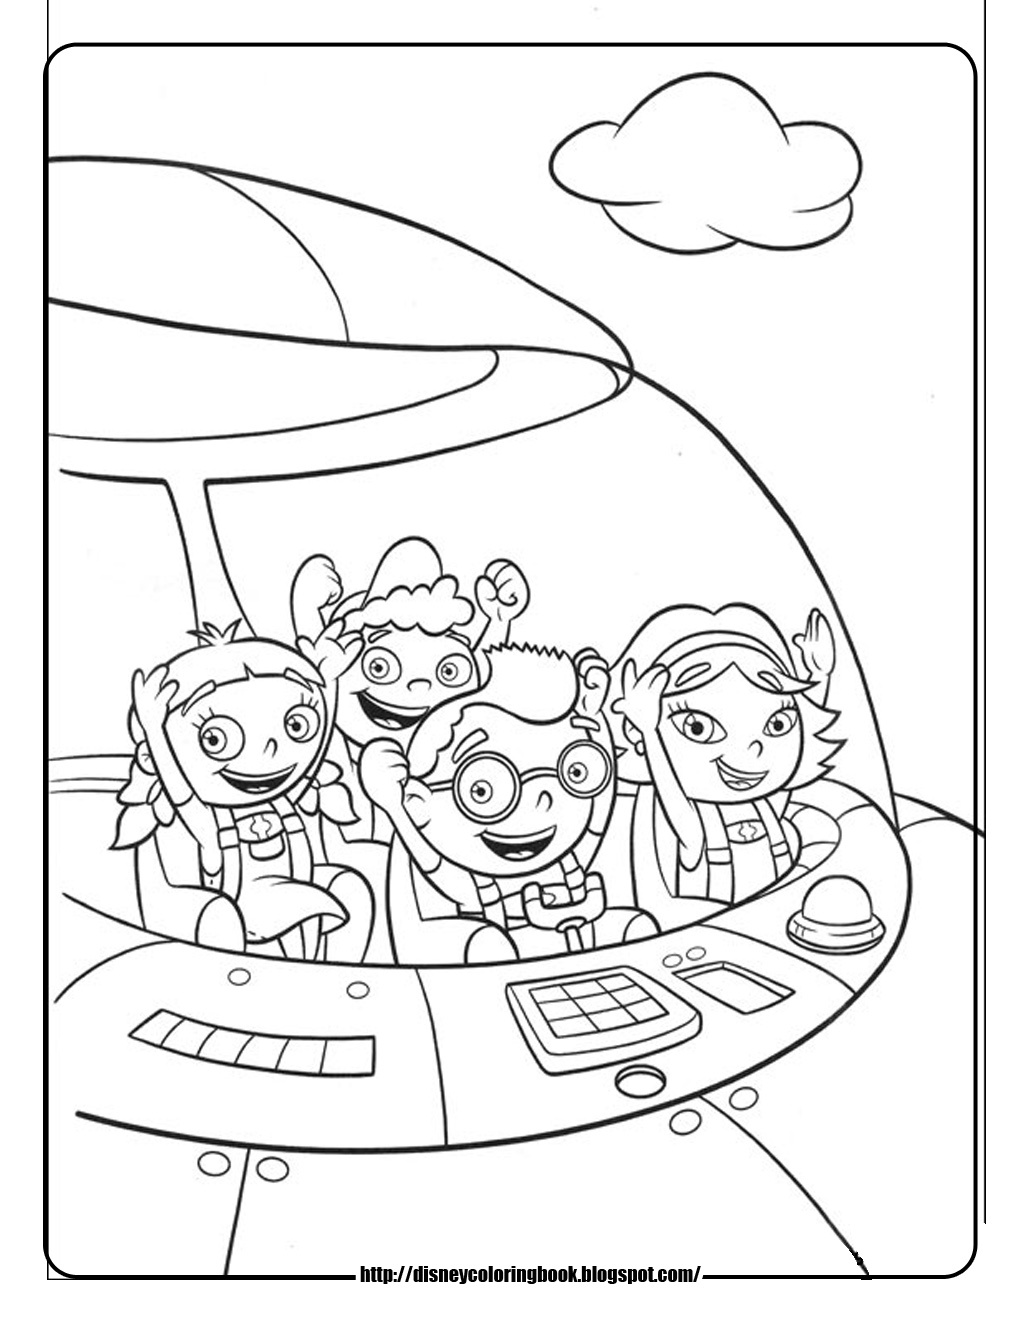 1020x1320 Little Einsteins Free Disney Coloring Sheets Learn To Coloring